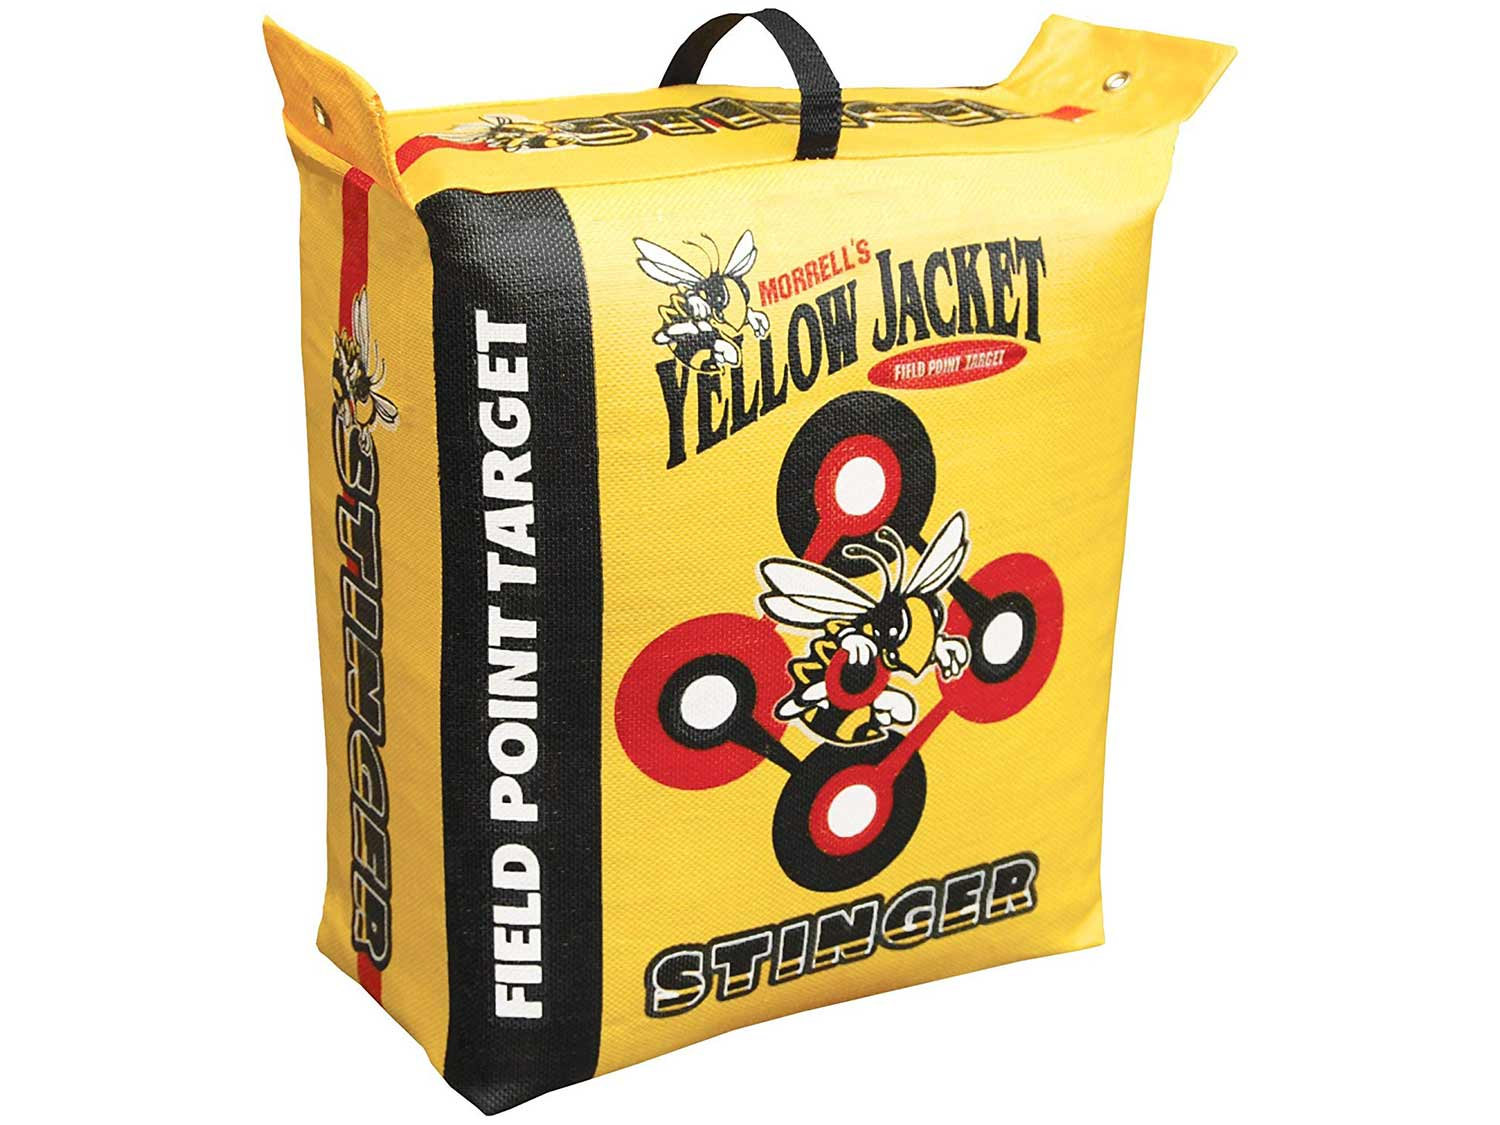 Morrell Yellow Jacket Stinger Field Point Bag Archery Target